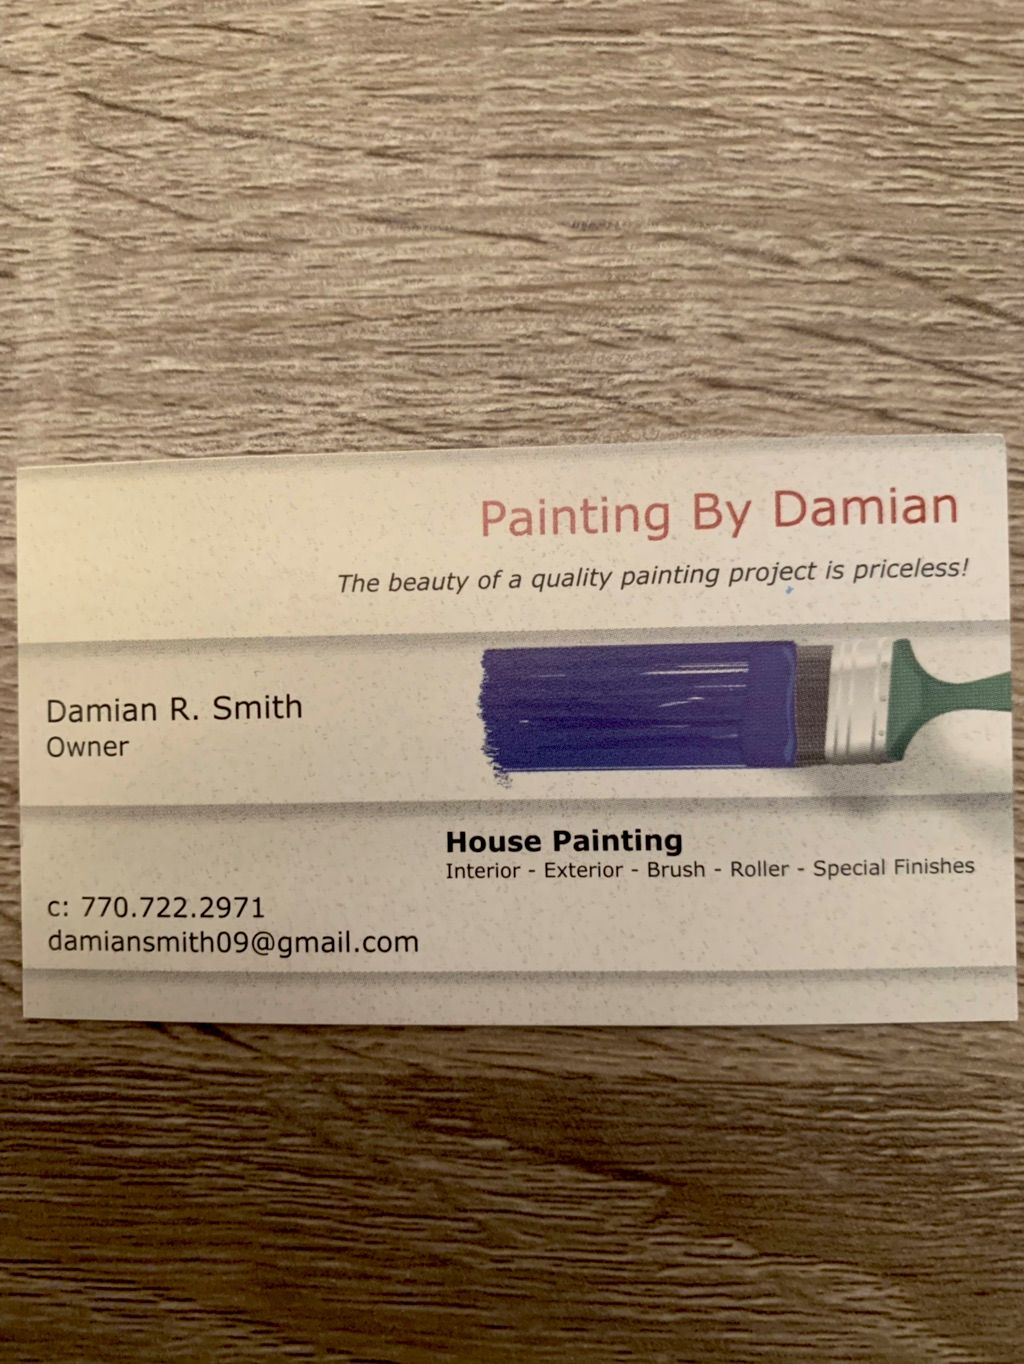 Painting By Damian